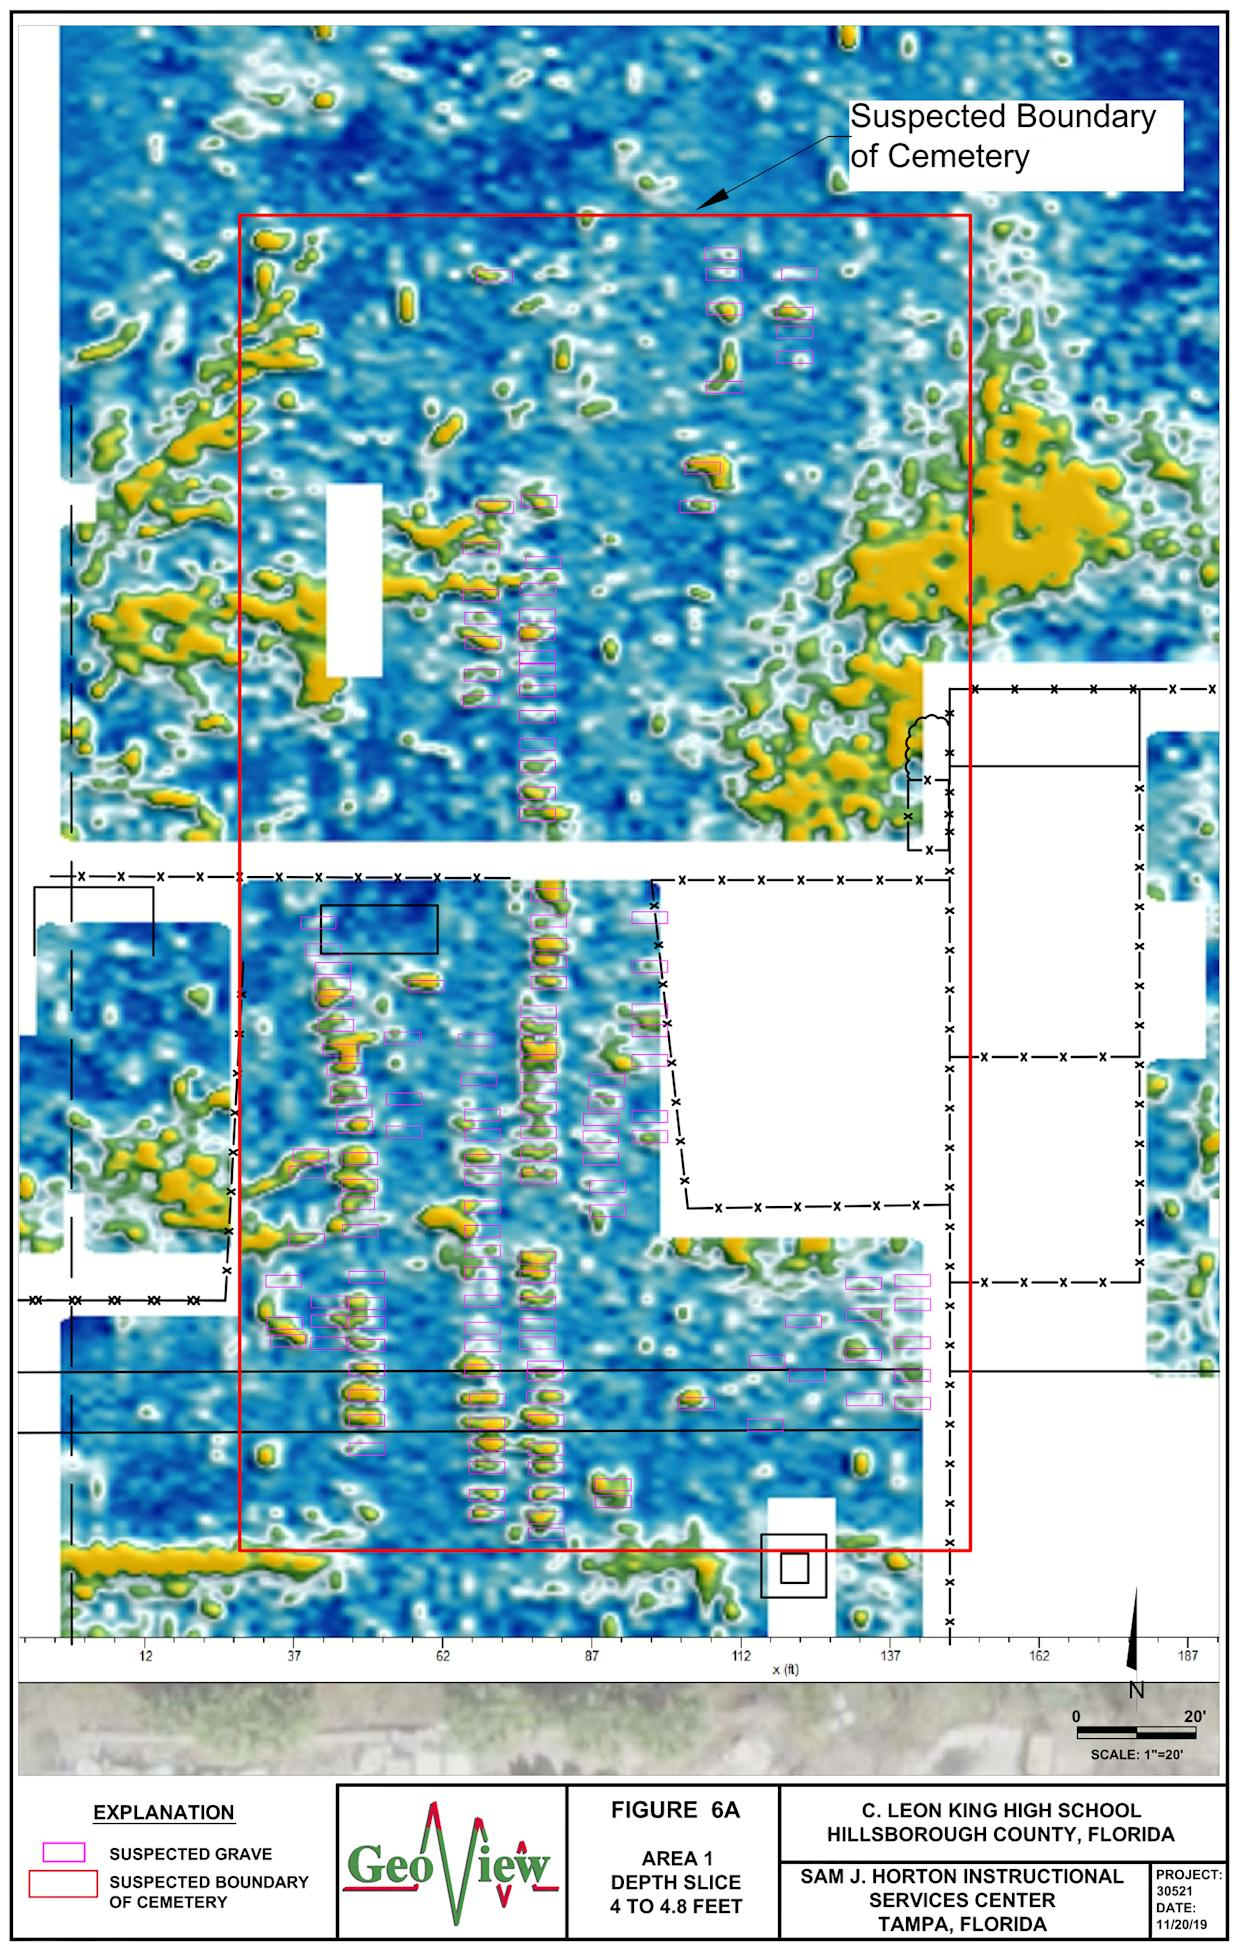 Results from the GeoView ground penetrating radar technology that located 145 graves on the grounds of King High school in Tampa, Fla.